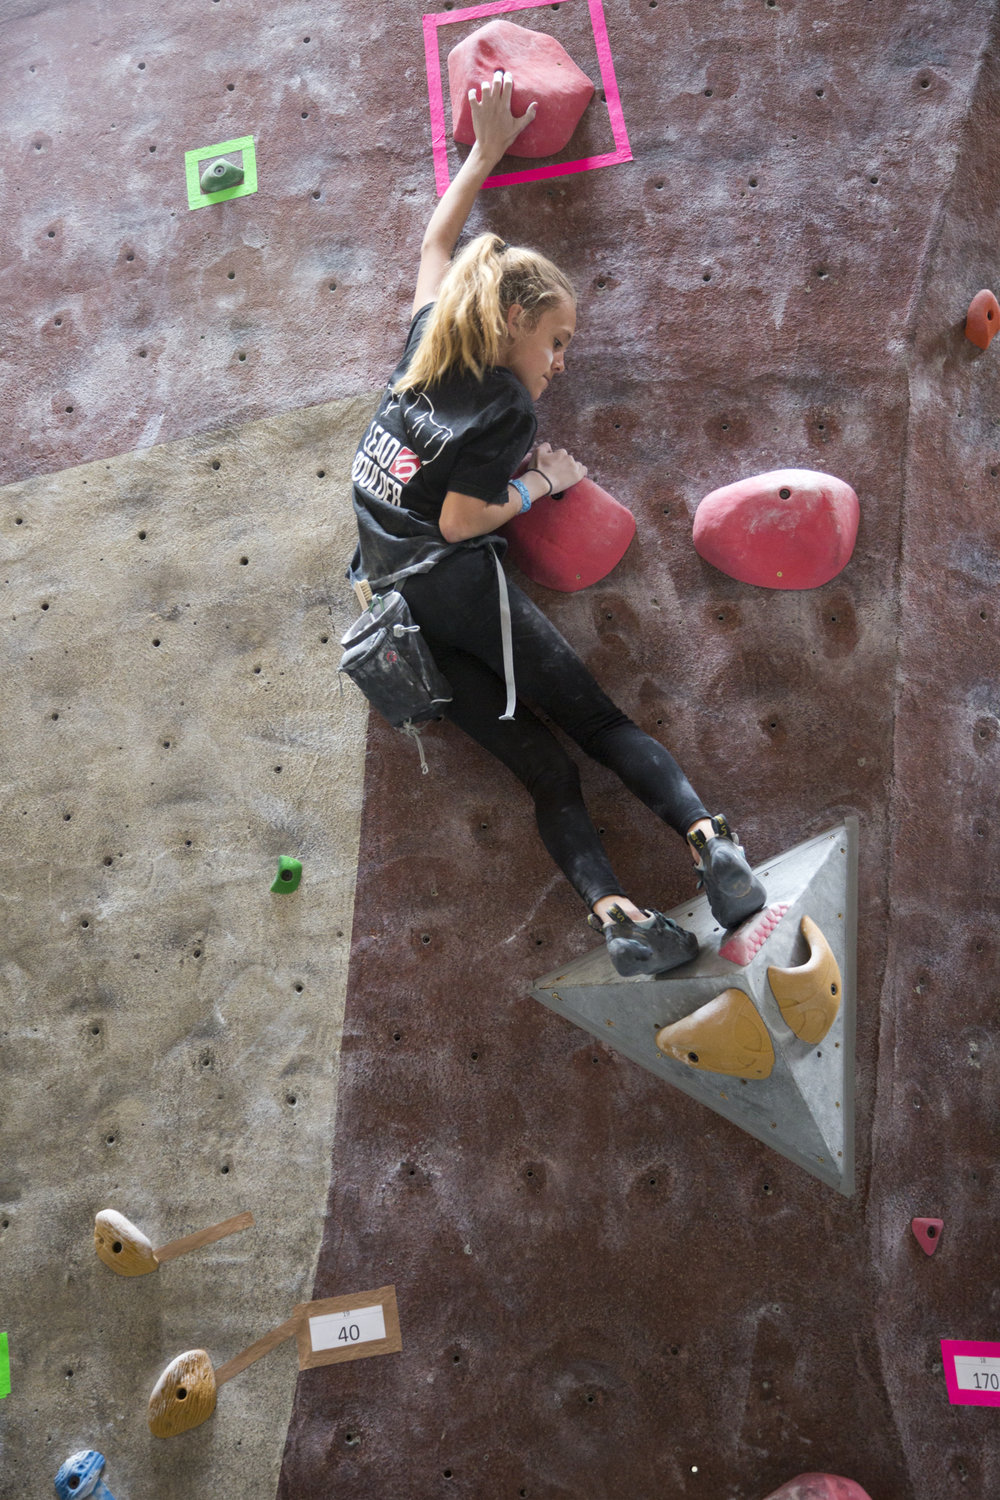 High School Club Program - A club program for local high school students to learn climbing along side a coach and compete against other schools in low-intensity competitions at the end of the year.